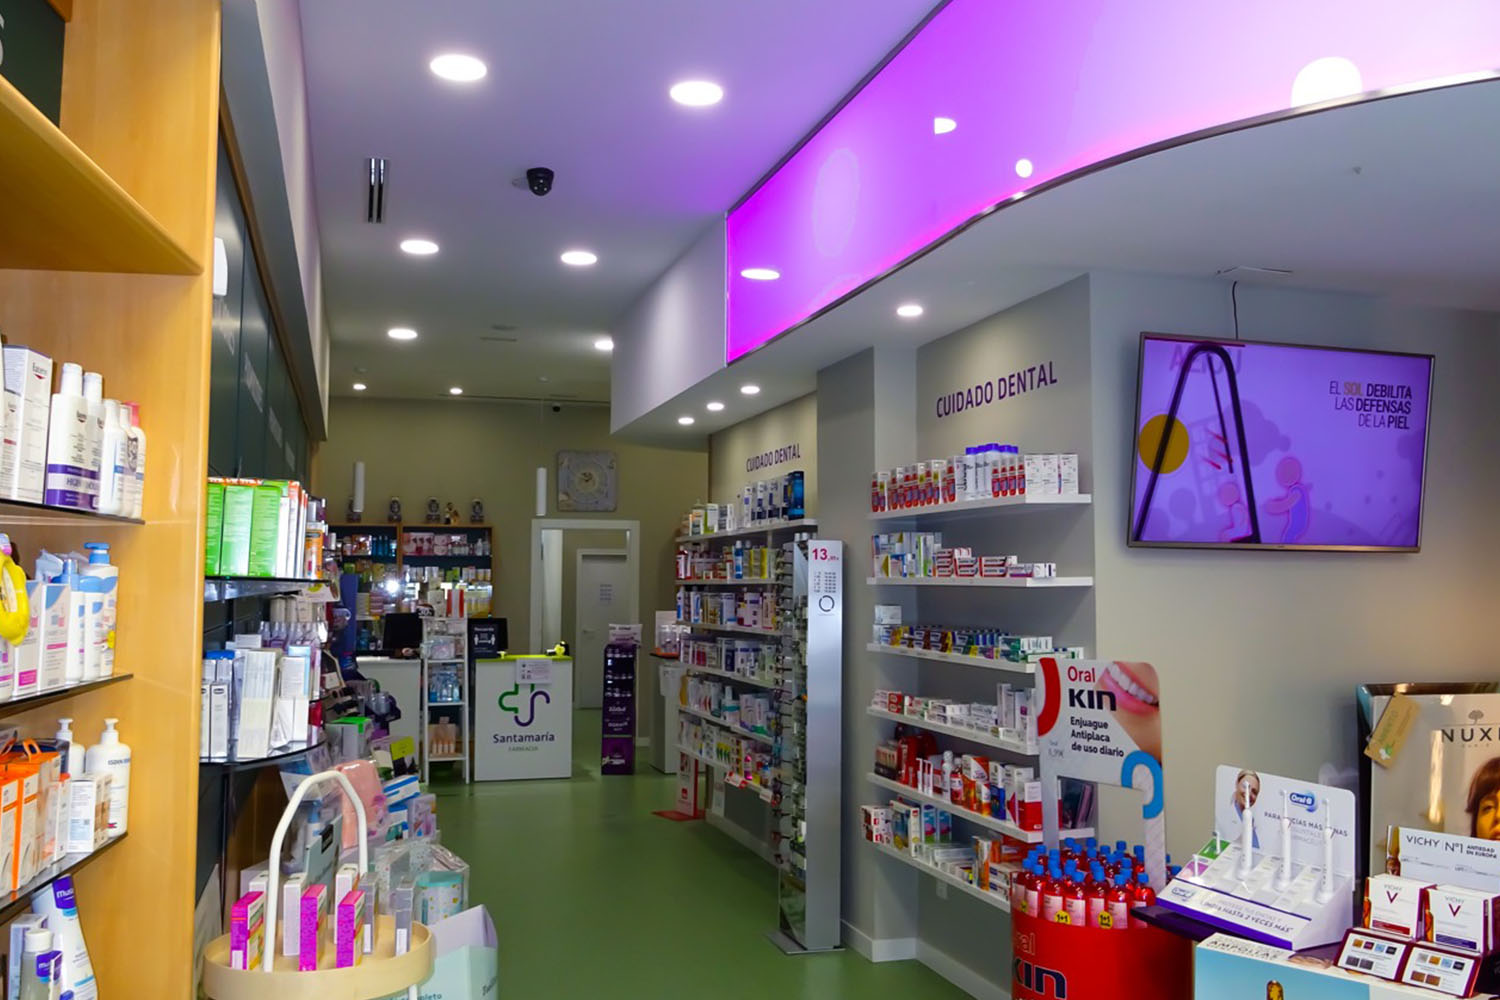 farmacia-beatriz-santamaria-alonso-1-4